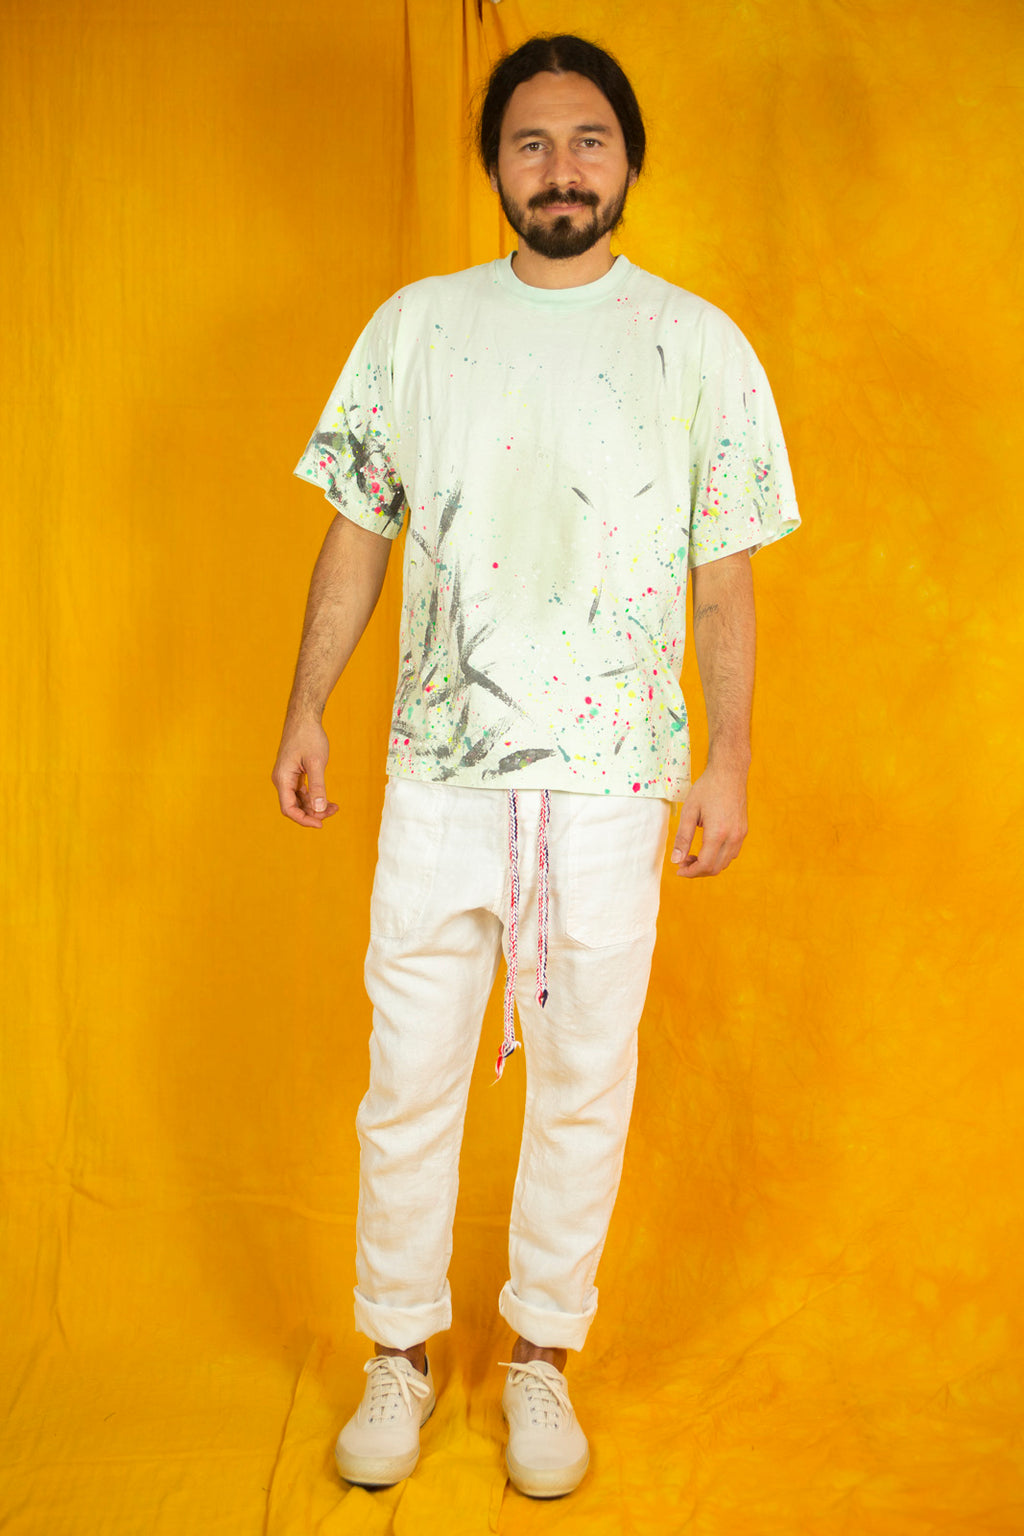 Classic T-shirt in Paint Splatter